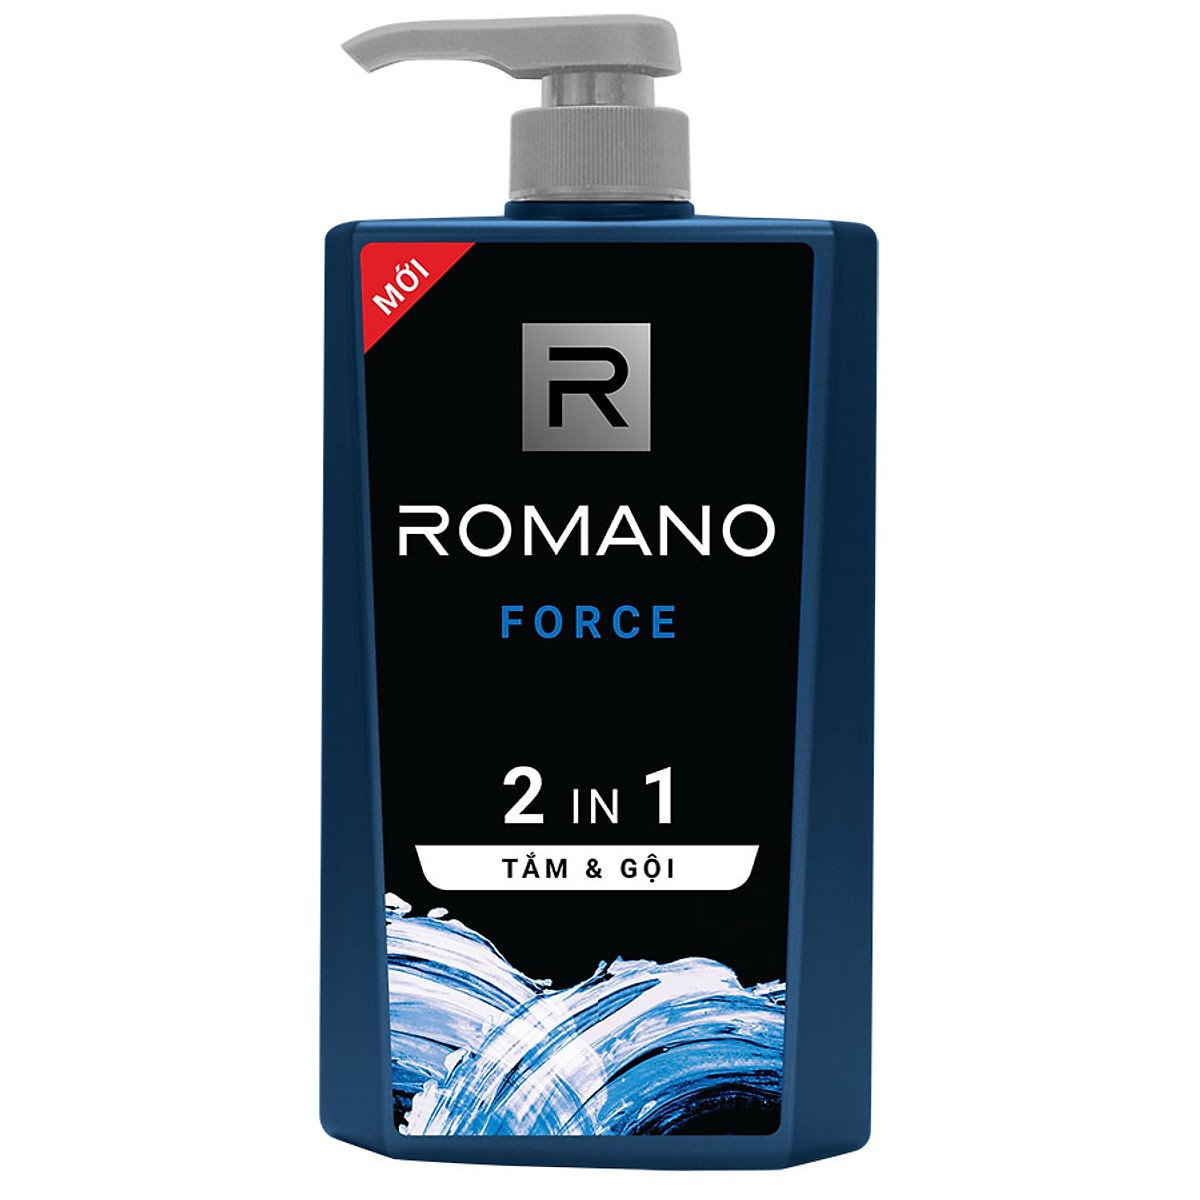 romano force 2in1 650g